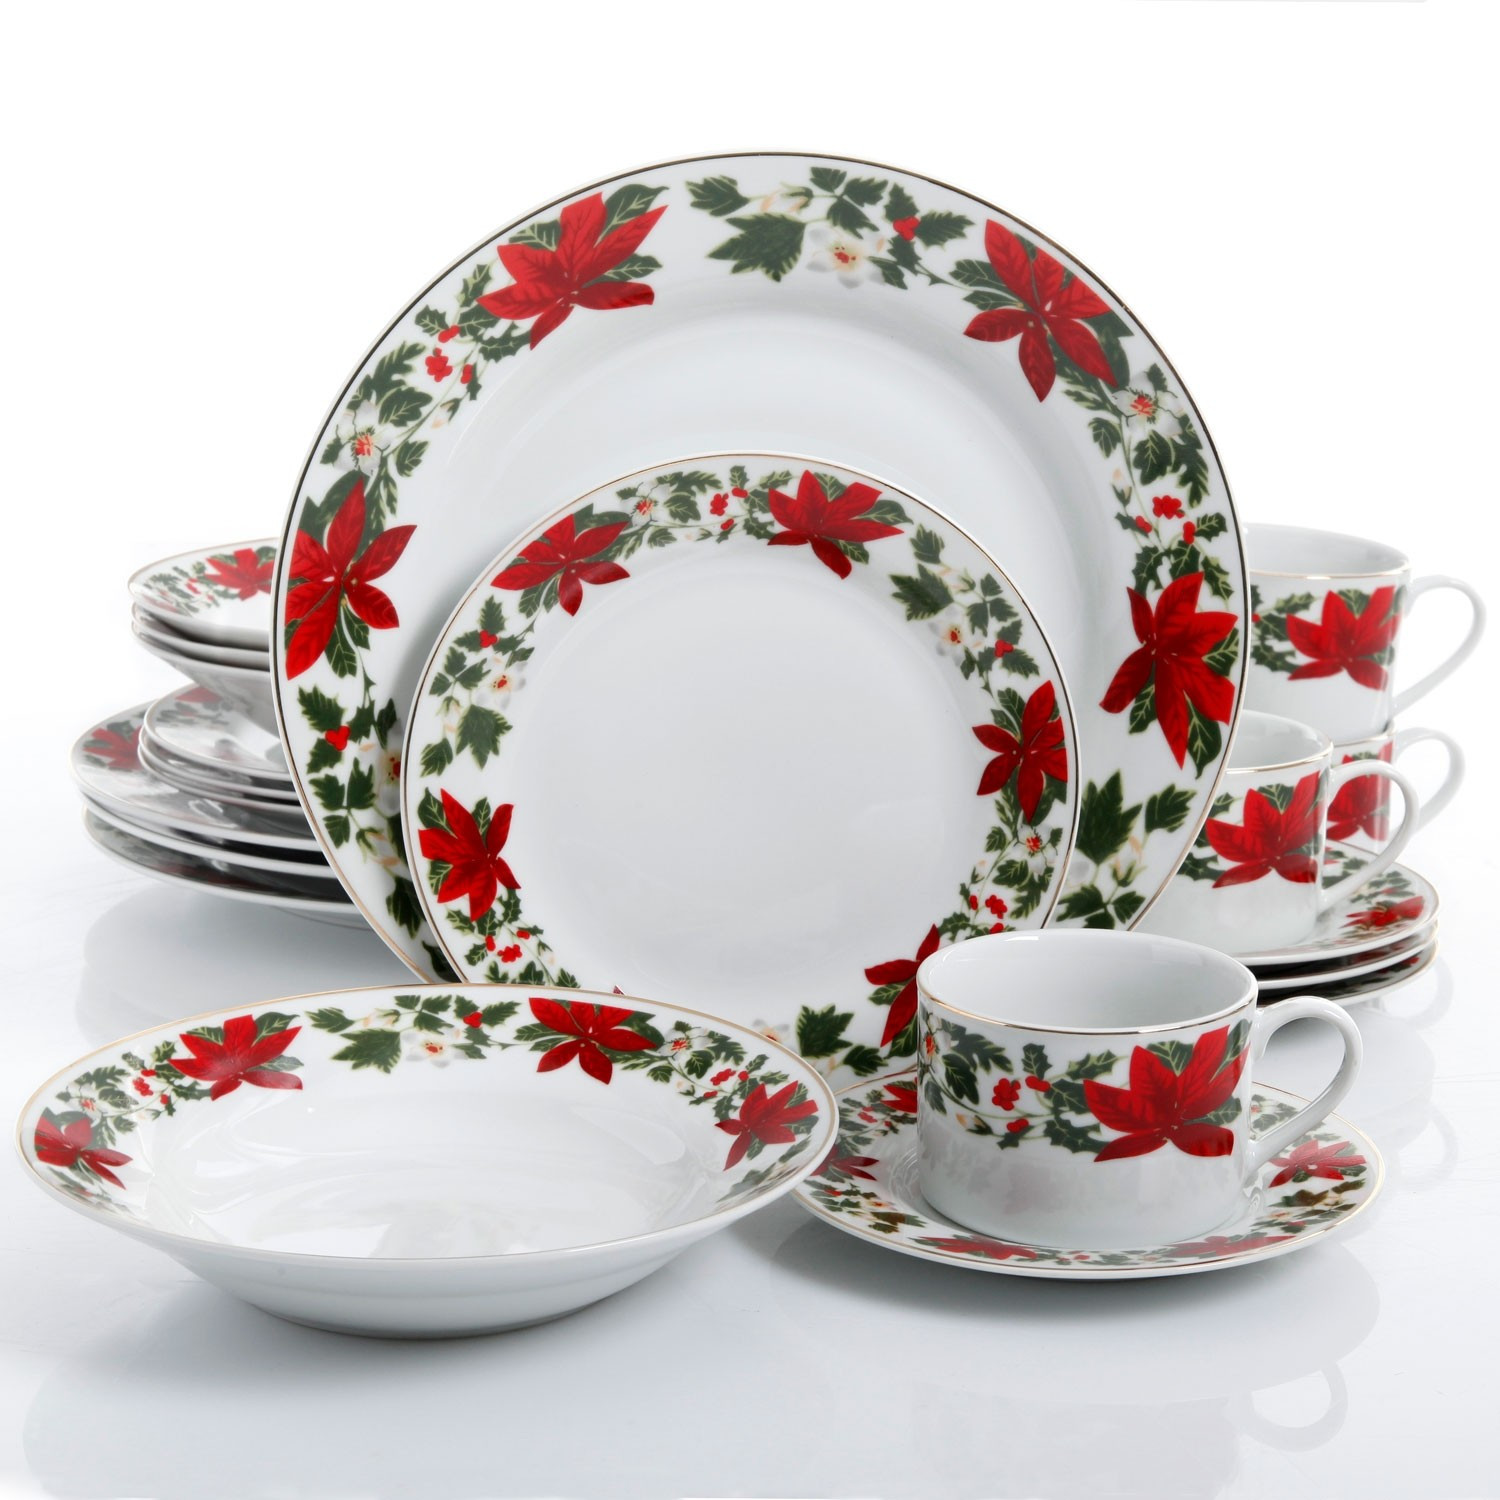 Christmas Dinner Set  Gibson Home Poinsettia Holiday 20 Piece Dinnerware Set